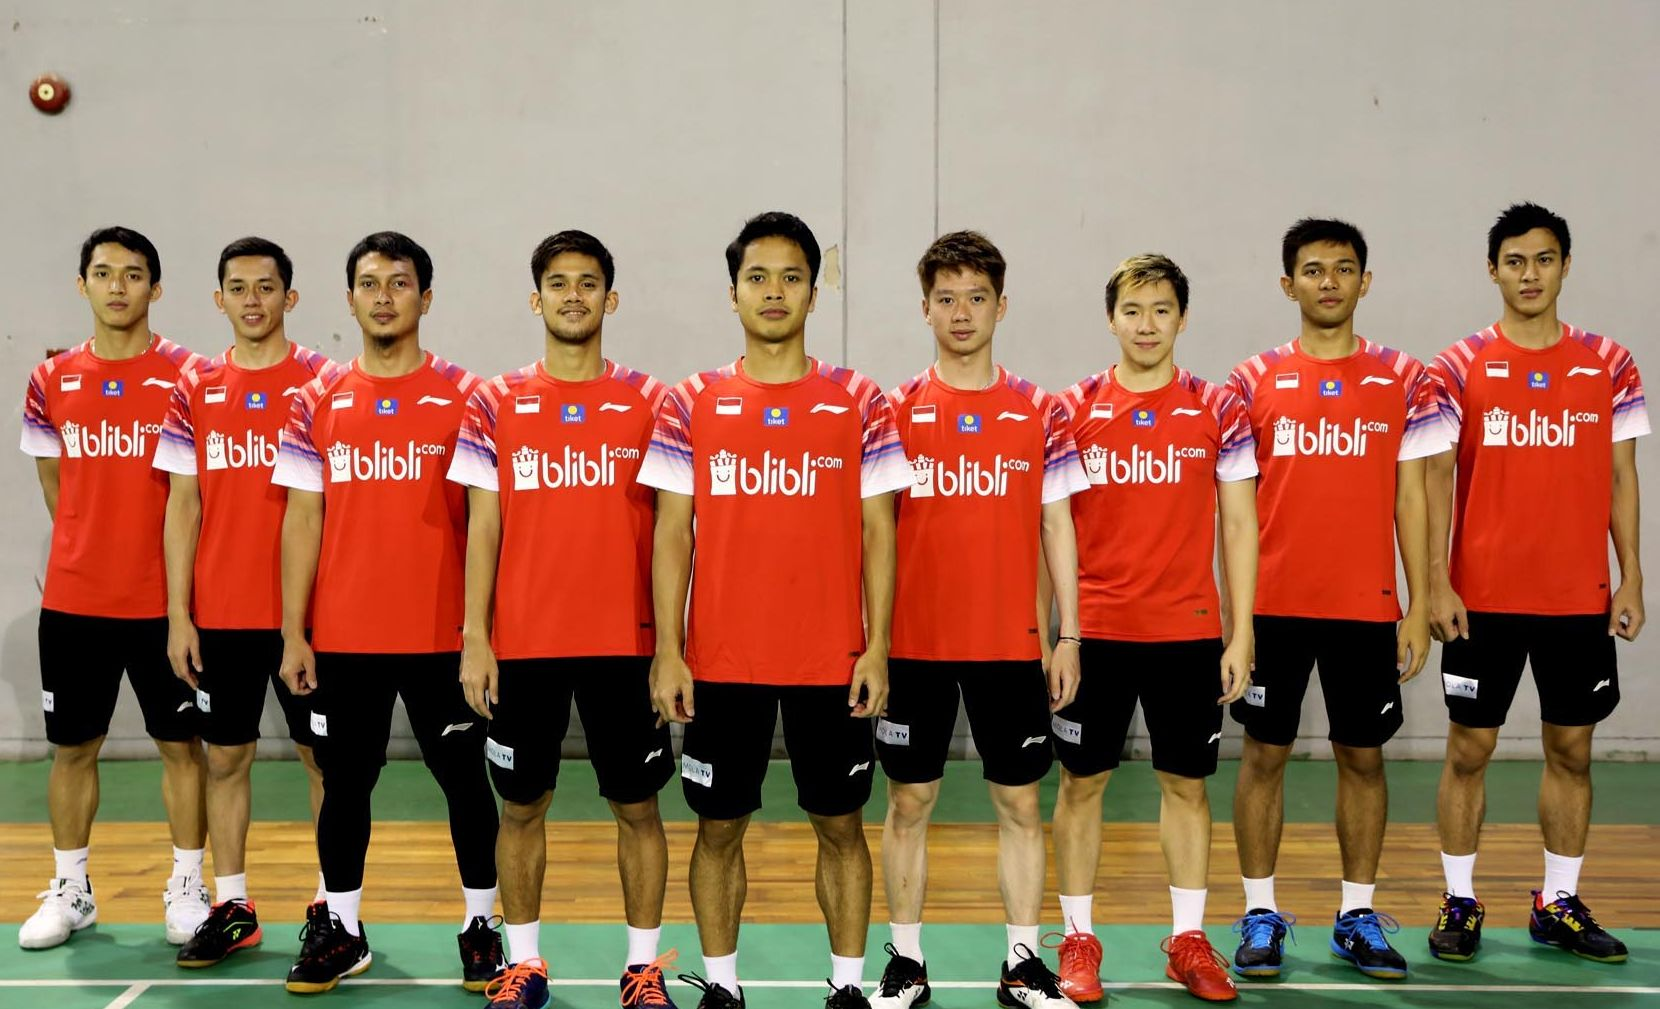 Jadwal Pertandingan Final Turnamen Badminton Asia Team Championship 2020 : Tim Putra Indonesia VS Tim Putera Malaysia